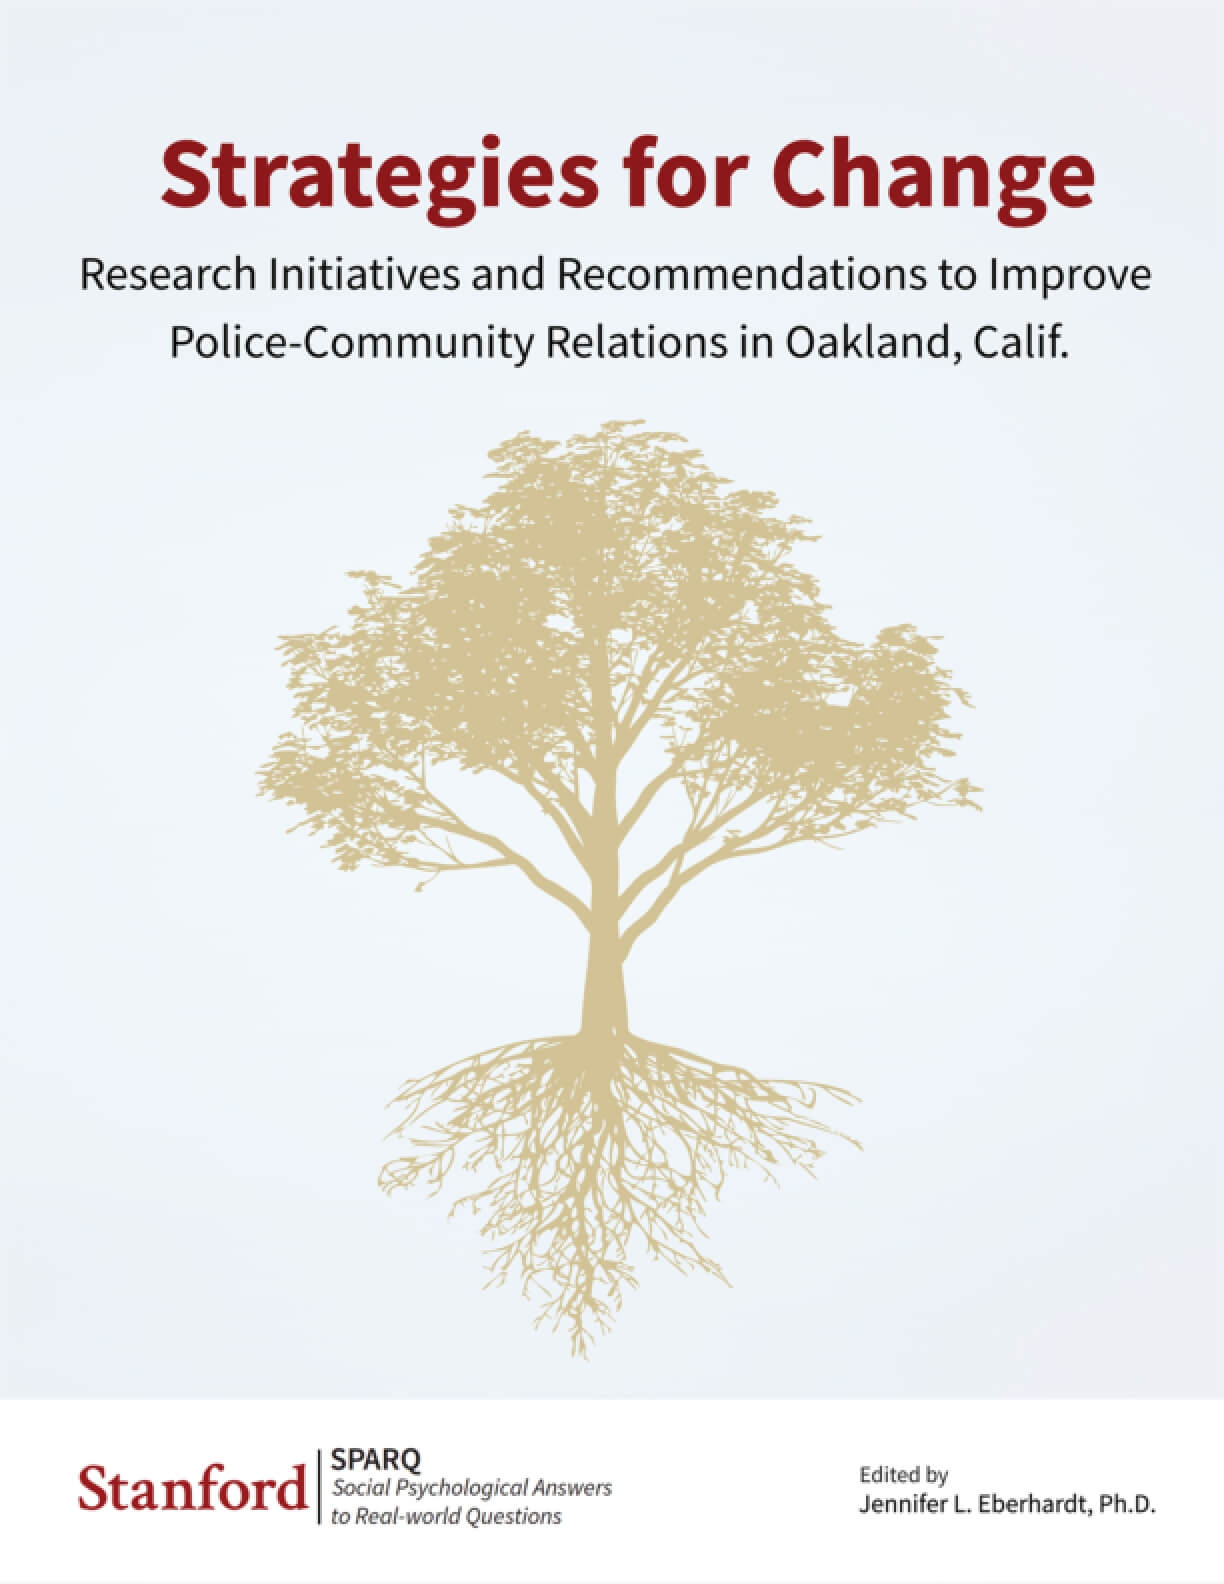 Issuelab stanford university sparq social psychological answers strategies for change research initiatives and recommendations to improve police community relations in oakland ca gumiabroncs Choice Image